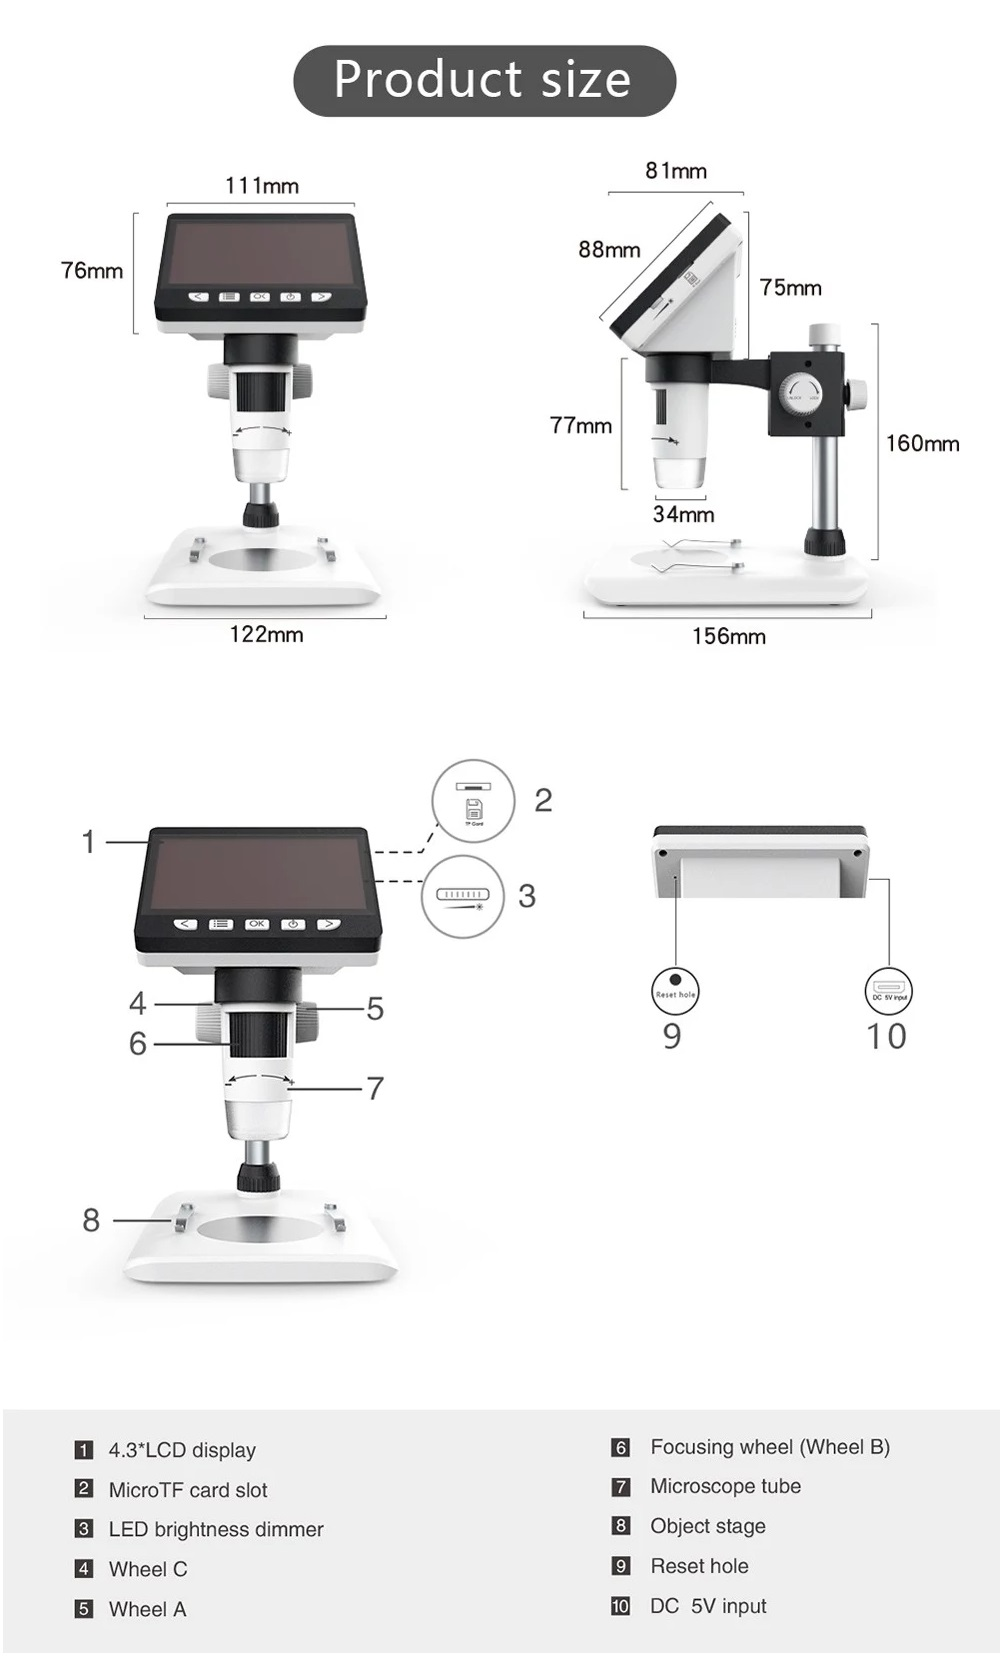 MUSTOOL G700 4.3 Inches HD 1080P Portable Desktop LCD Digital Microscope Support 10 Languages 8 Adjustable High Brightness LED With Adjustable Bracket Picture Capture Video Recording 38